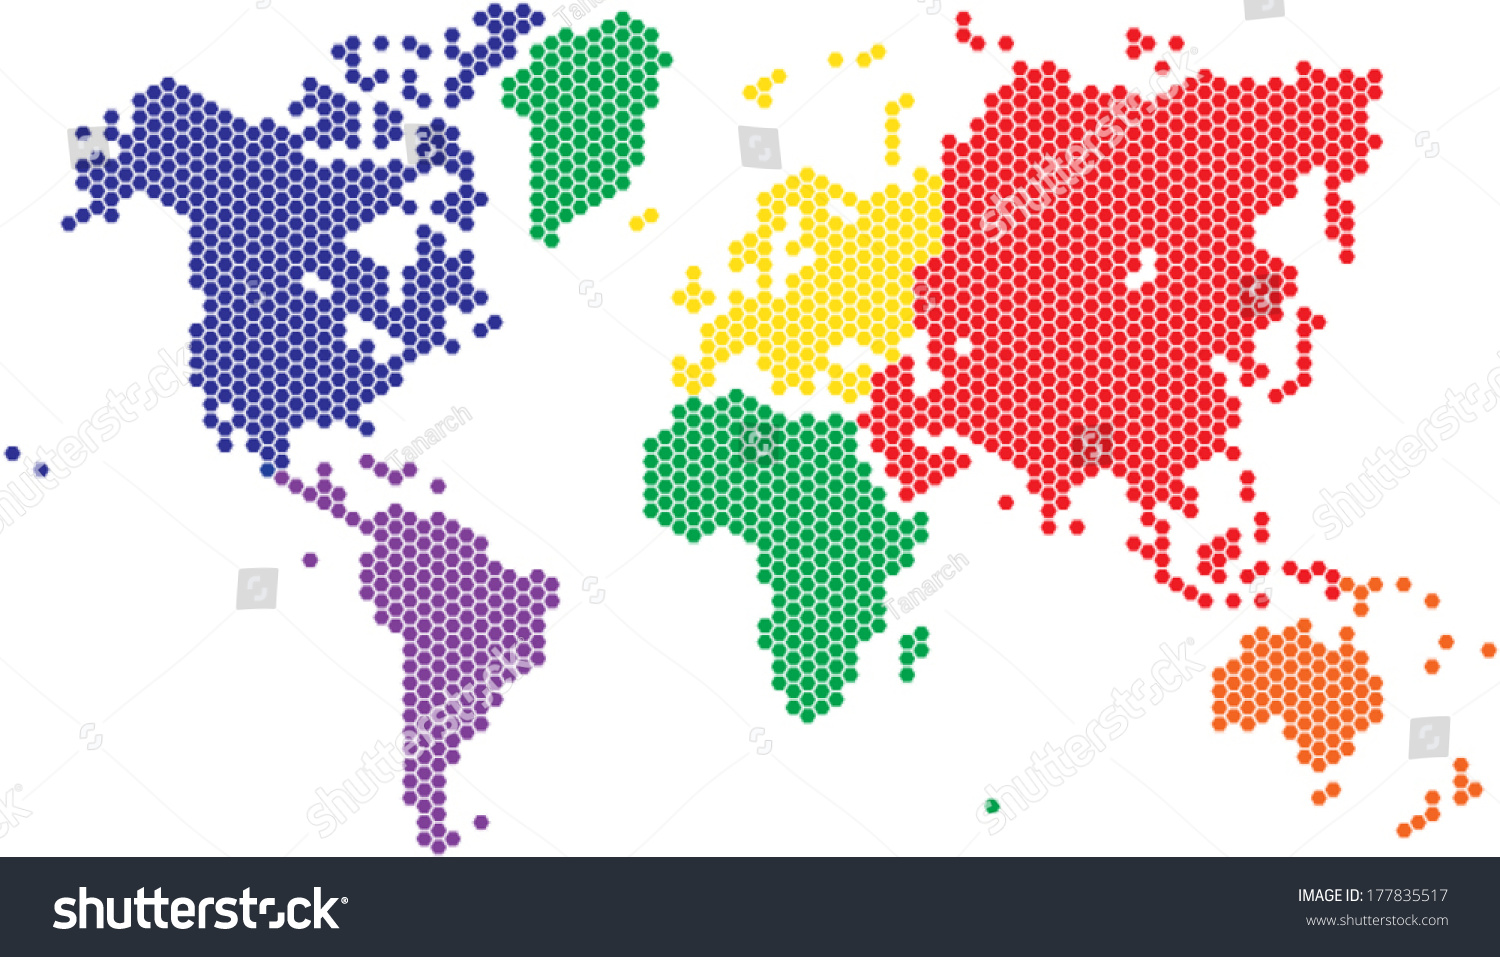 Hexagon shape world map various colors stock vector 177835517 hexagon shape world map in various colors by continent gumiabroncs Image collections